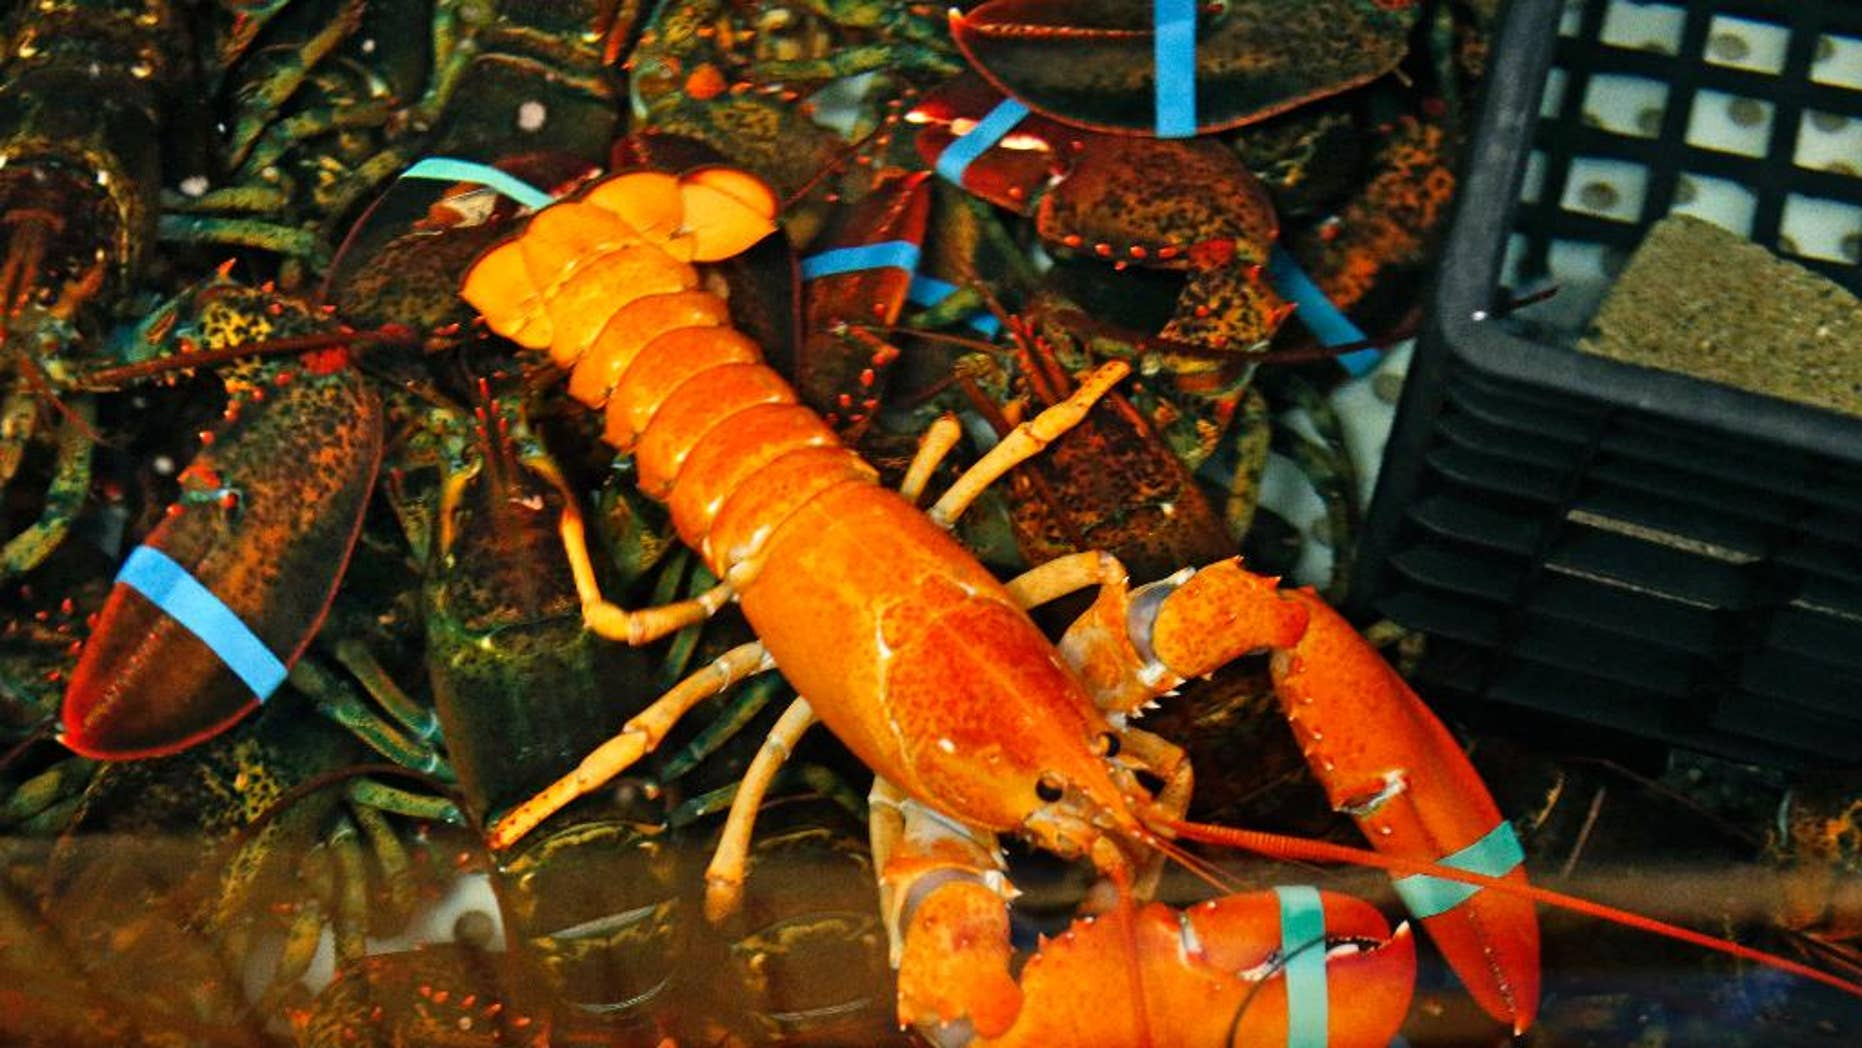 A rare bright orange lobster shares the tank with regular lobsters at the Fisherman's Catch Seafood restaurant in Raymond, Maine, Thursday, July 23, 2015. Fisherman Bill Coppersmith, of Windham, Maine, caught the crustacean on Wednesday. Robert Bayer, executive director of The Lobster Institute at the University of Maine, says the odds of catching an orange lobster are one in several million. Coppersmith caught a white lobster in 1997; a one-in-100 million catch. (AP Photo/Robert F. Bukaty)